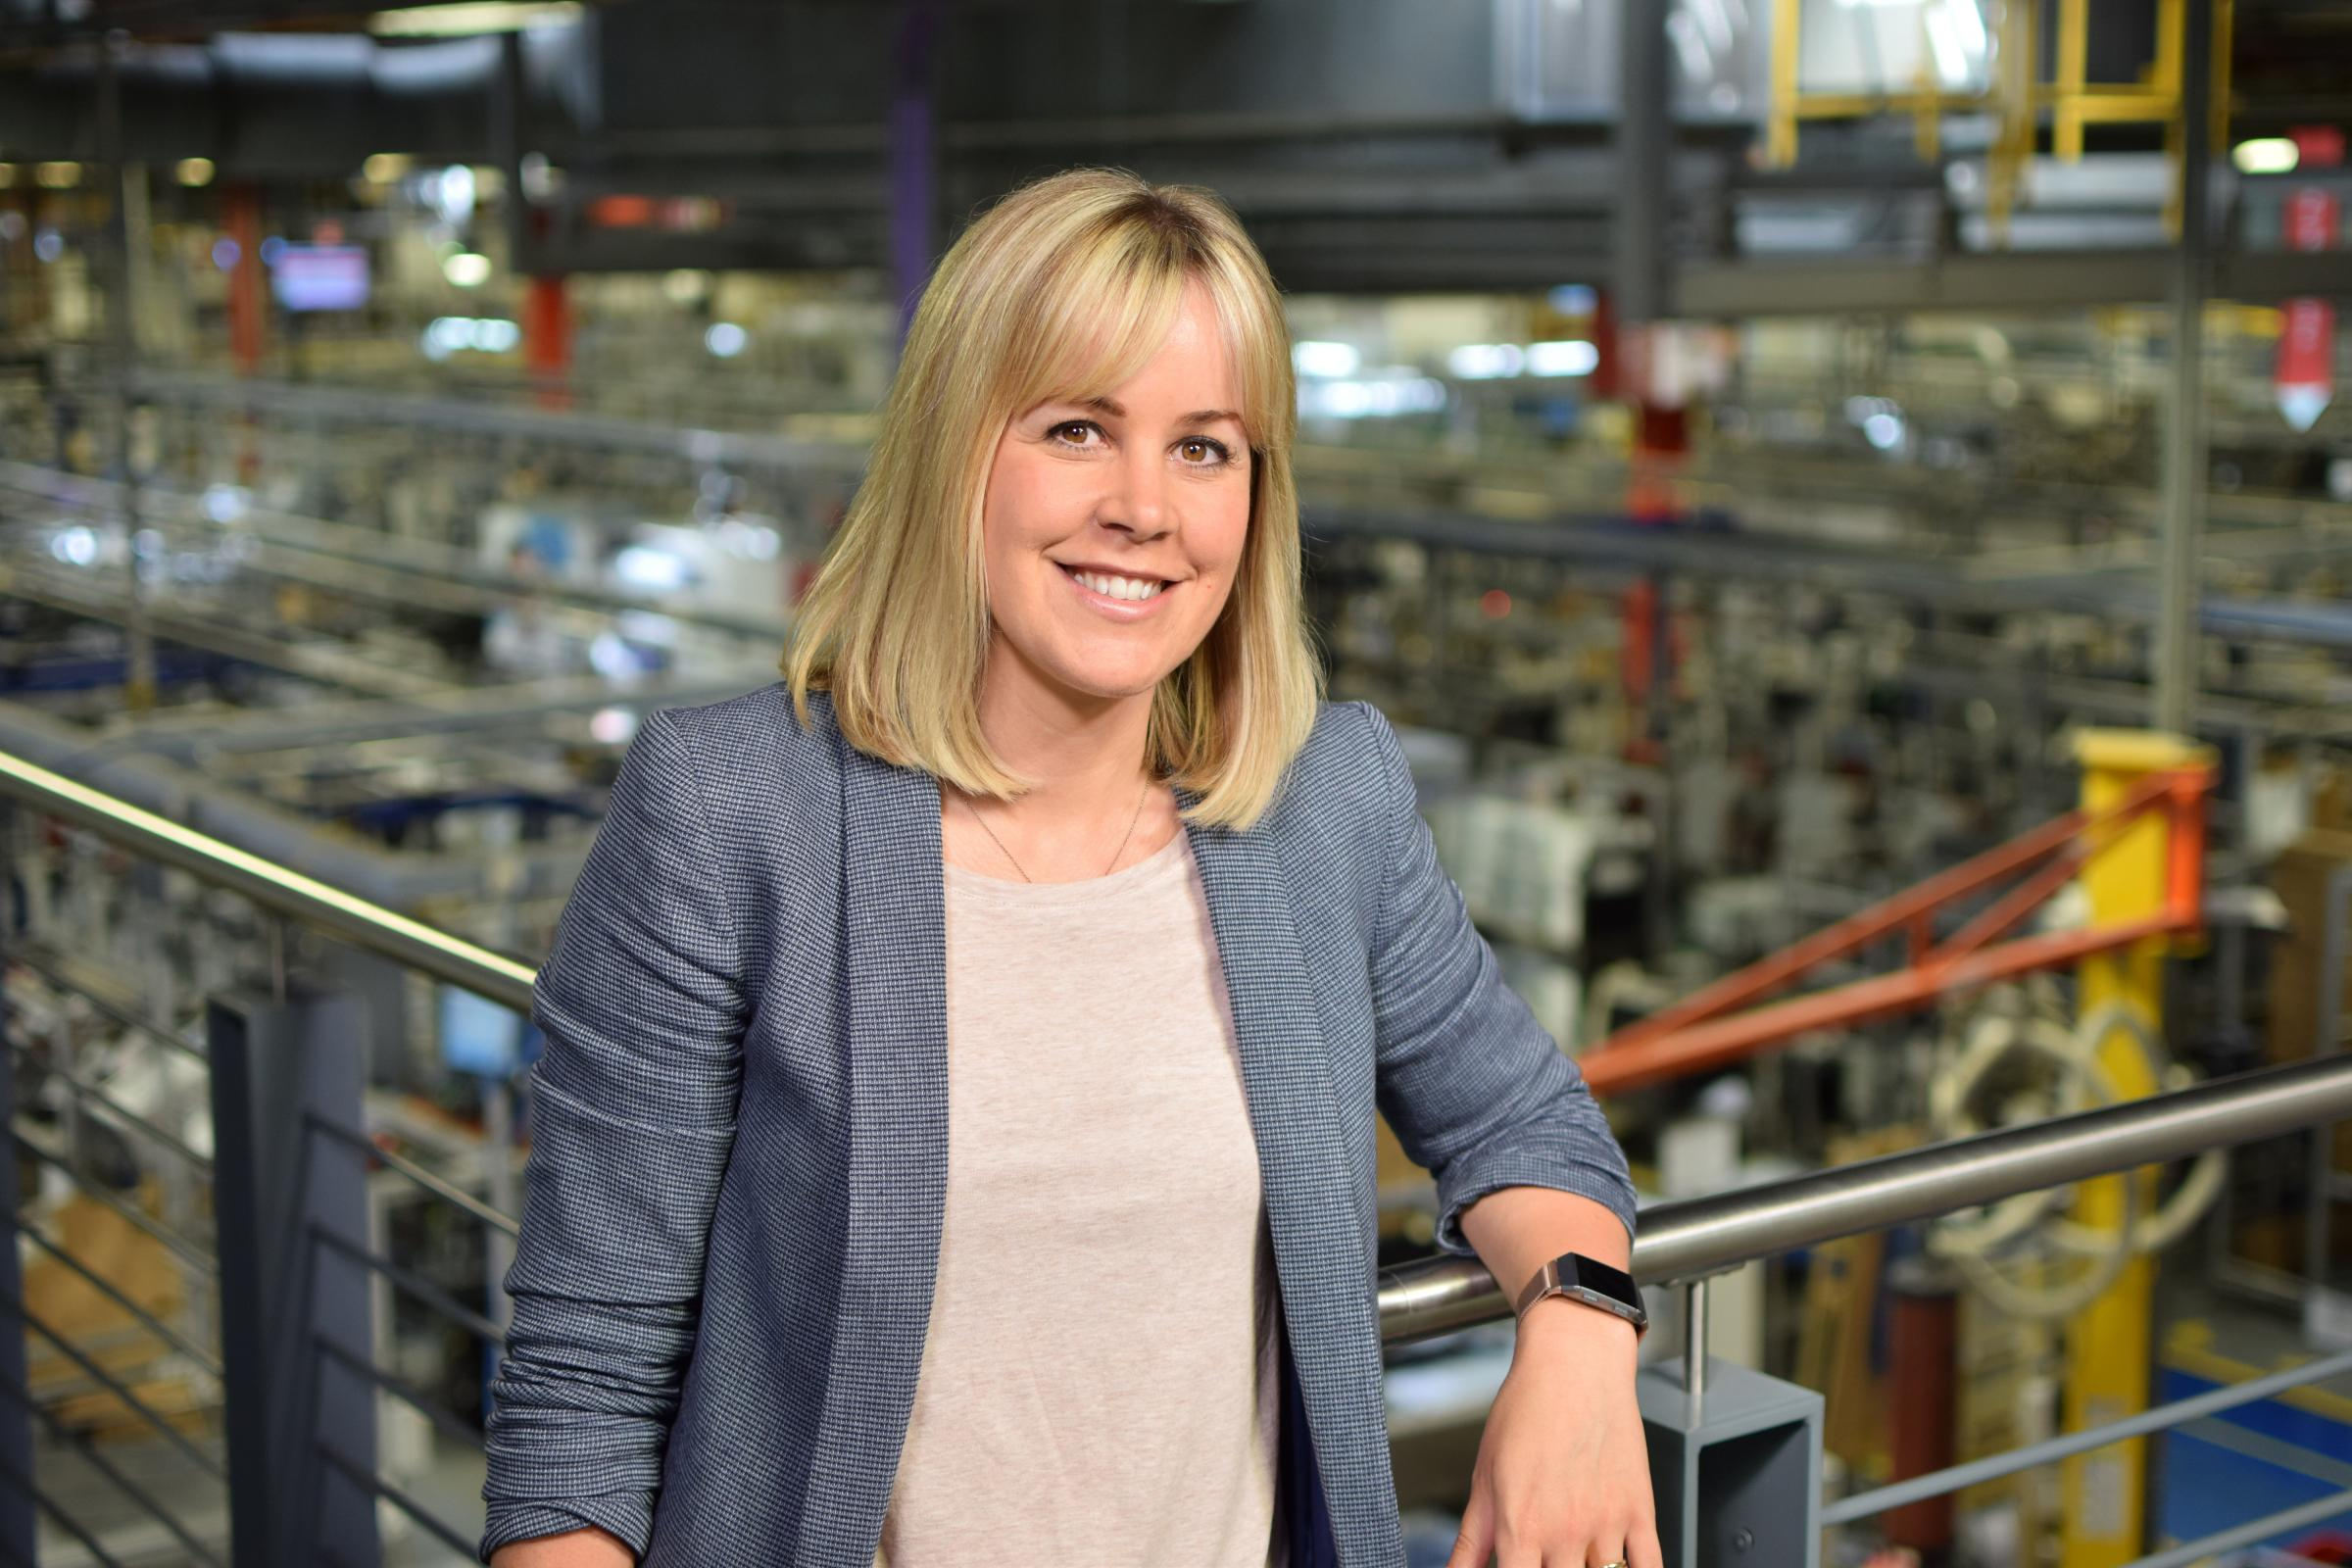 'Do not give up on your dreams' Worcester Bosch's Victoria Billings on her journey